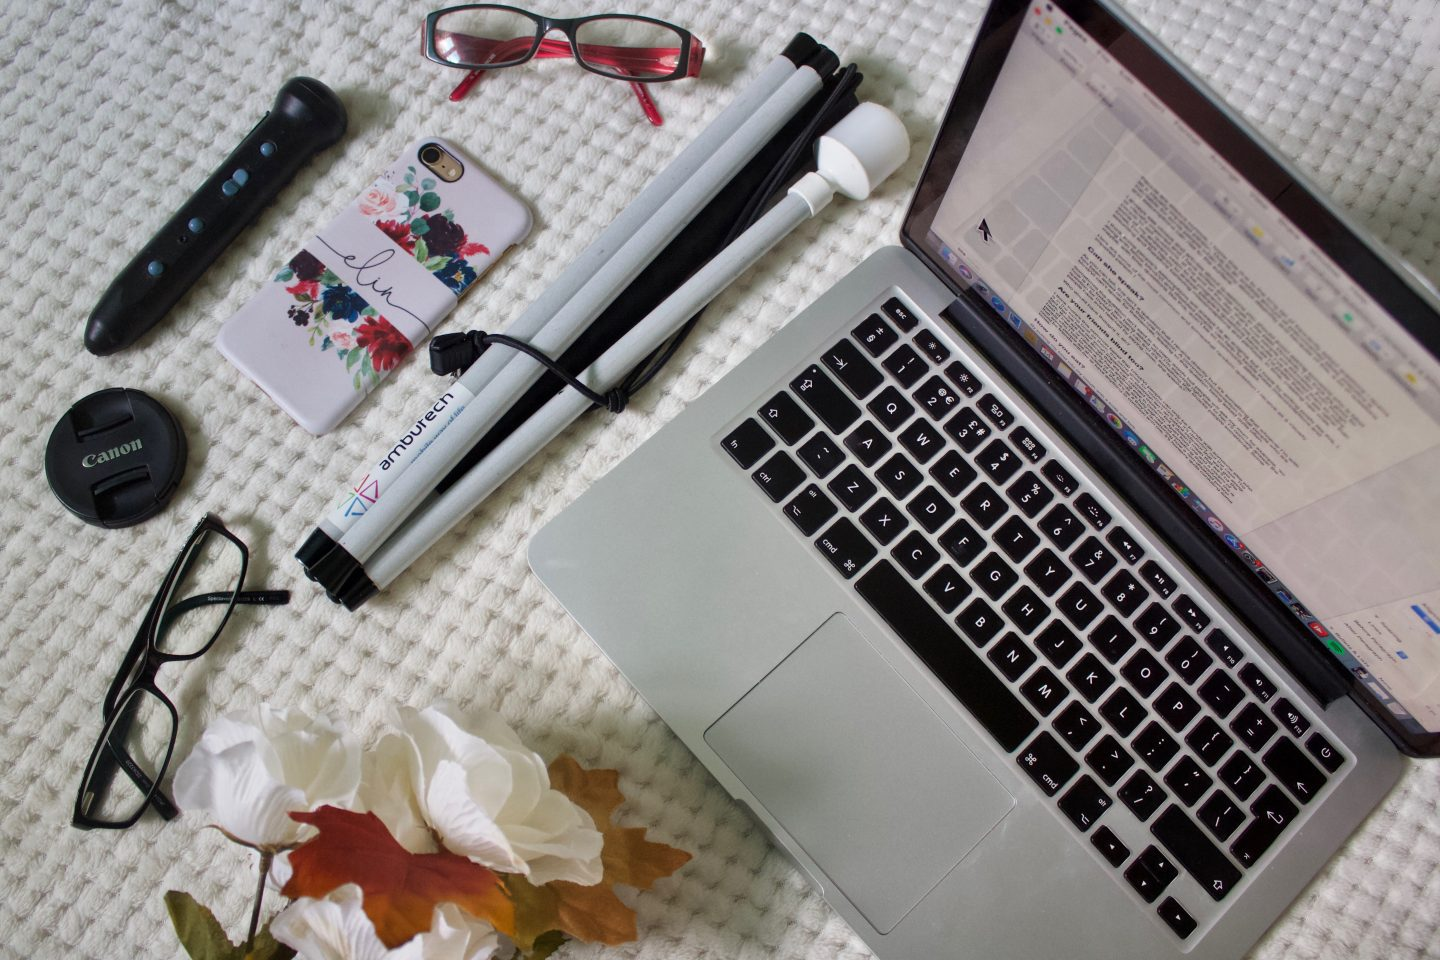 A photo of a macbook with a document open on it, my white cane, the penfriend labeller and two pairs of glasses. There is also a bunch of artificial flowers in the bottom corner of the photo.